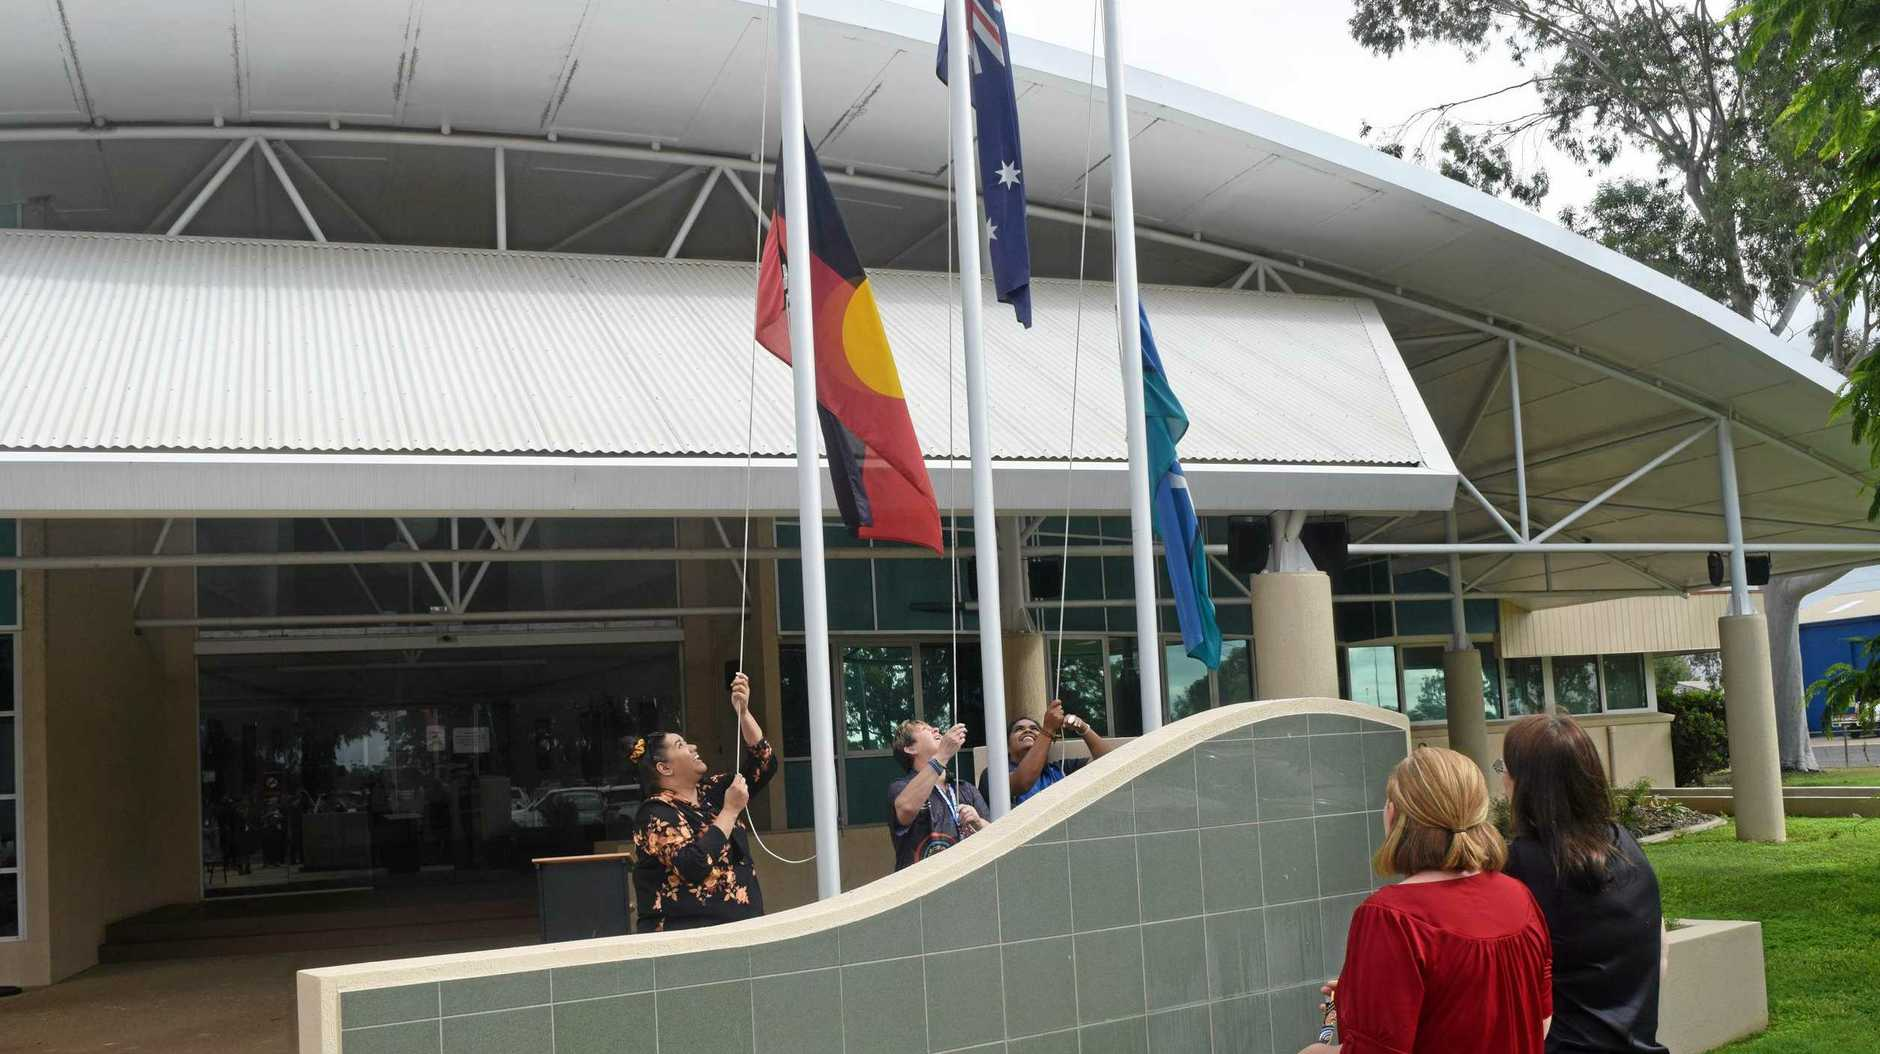 NAIDOC CELEBRATION: The raising of the flags at the Department of Natural Resources, Mines and Energy's NAIDOC ceremony in Emerald.